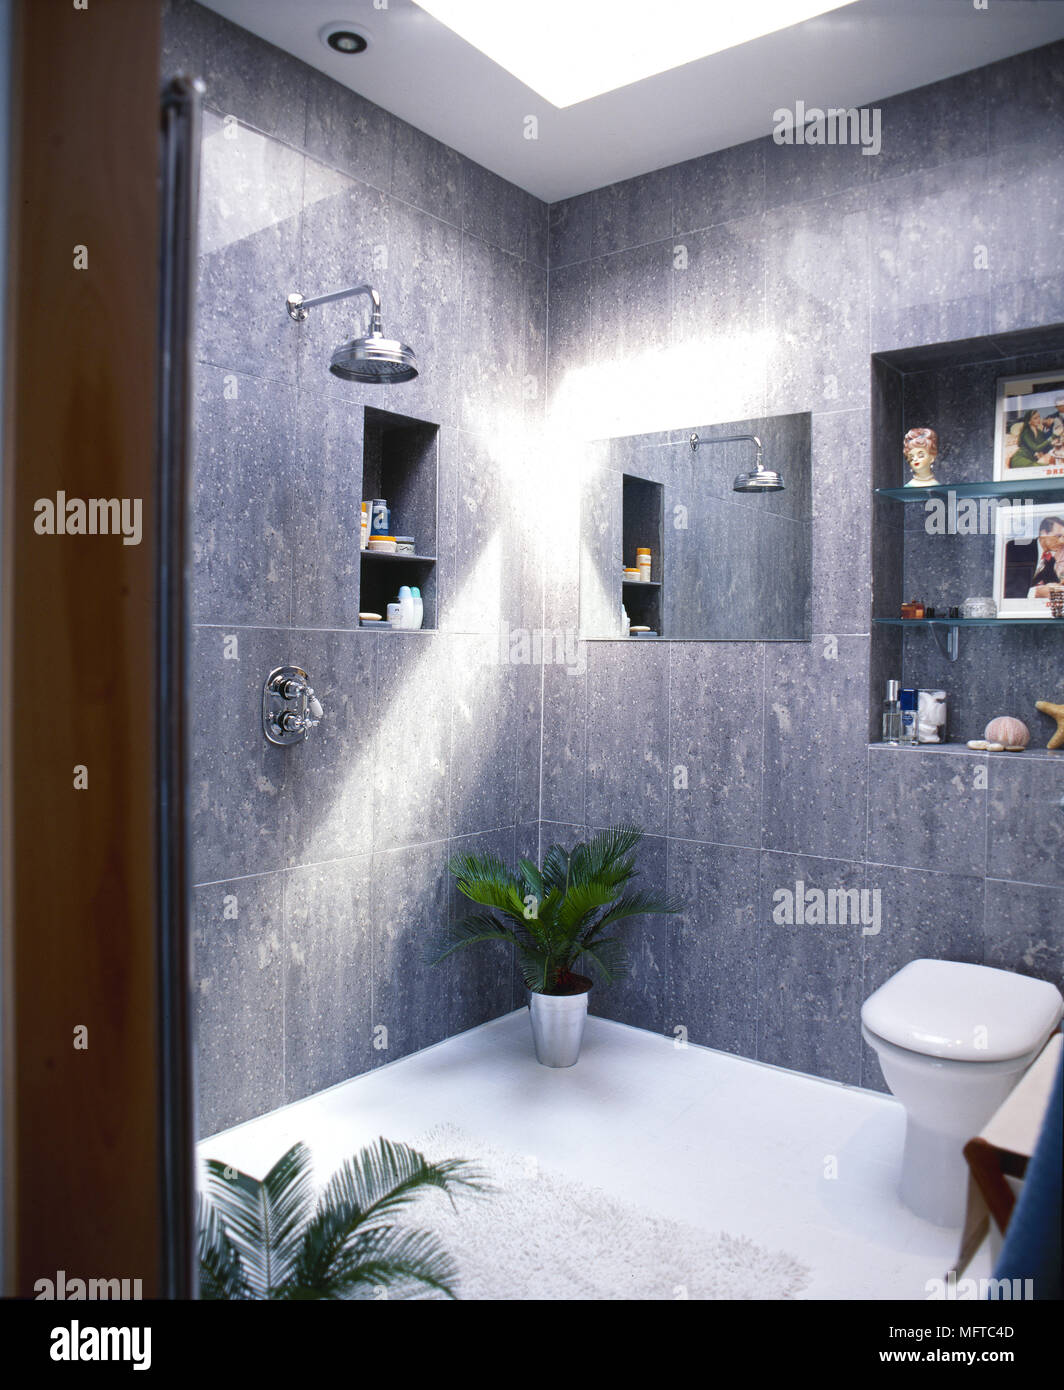 Modern, grey tiled bathroom with open shower, niche shelving, and ...